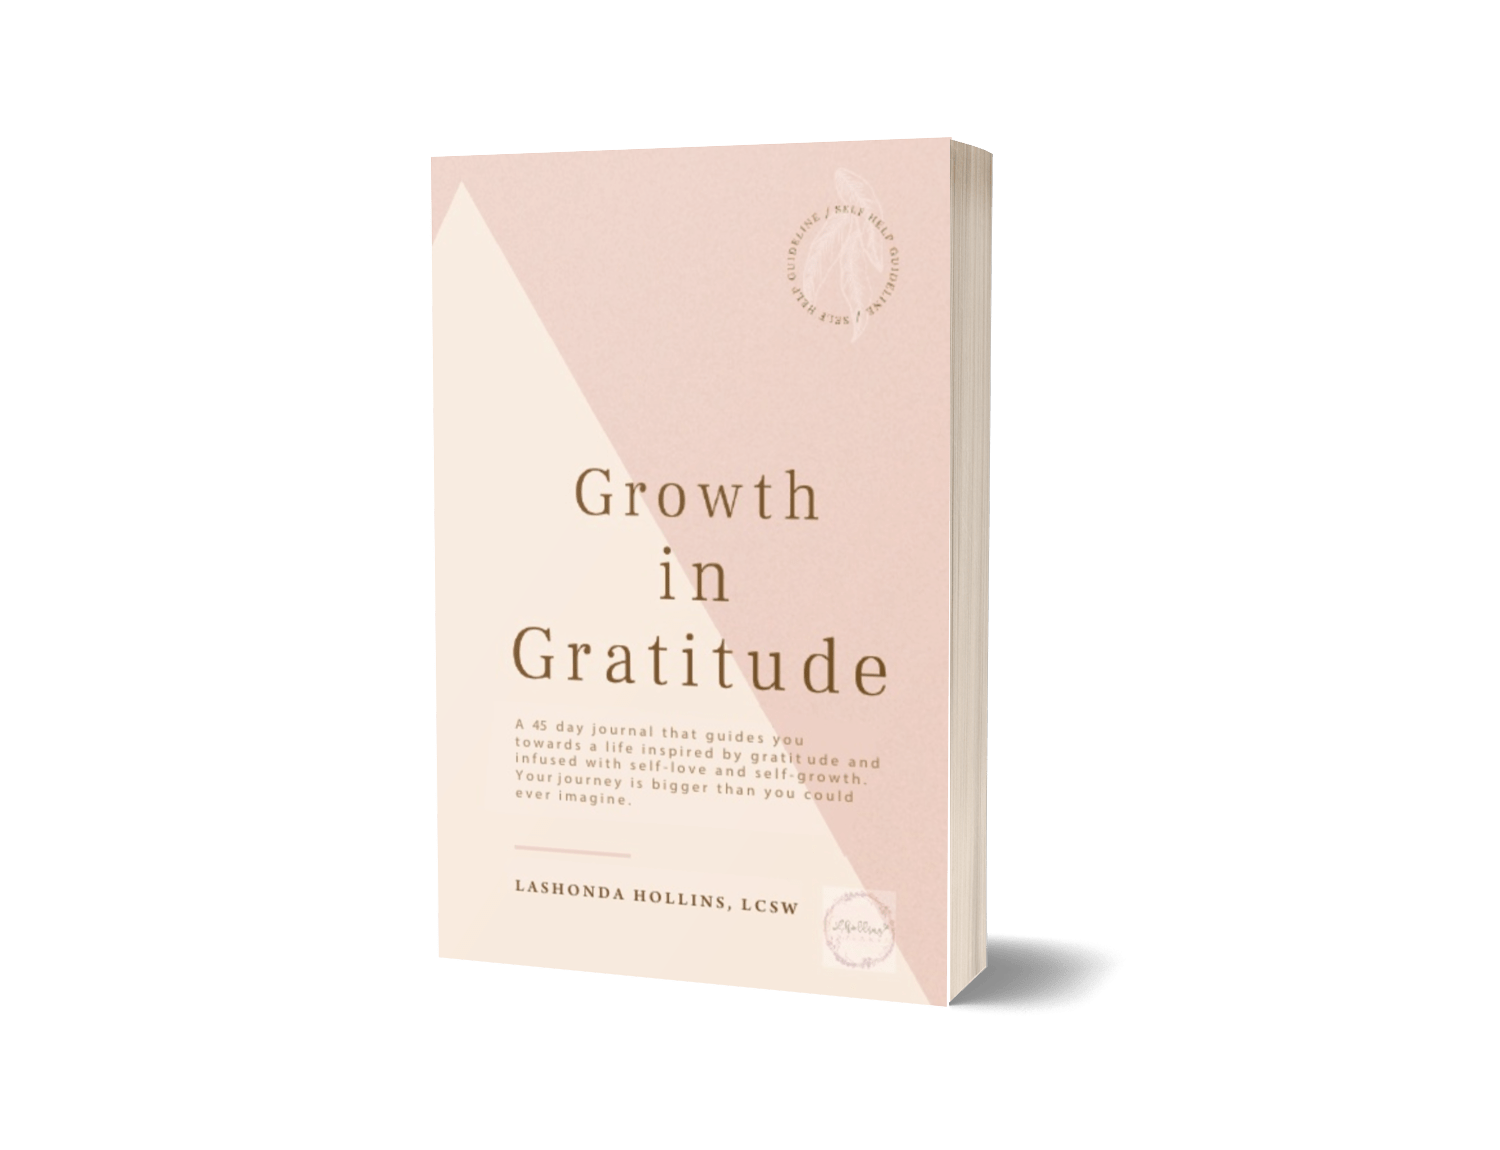 Growth in Gratitude Journal